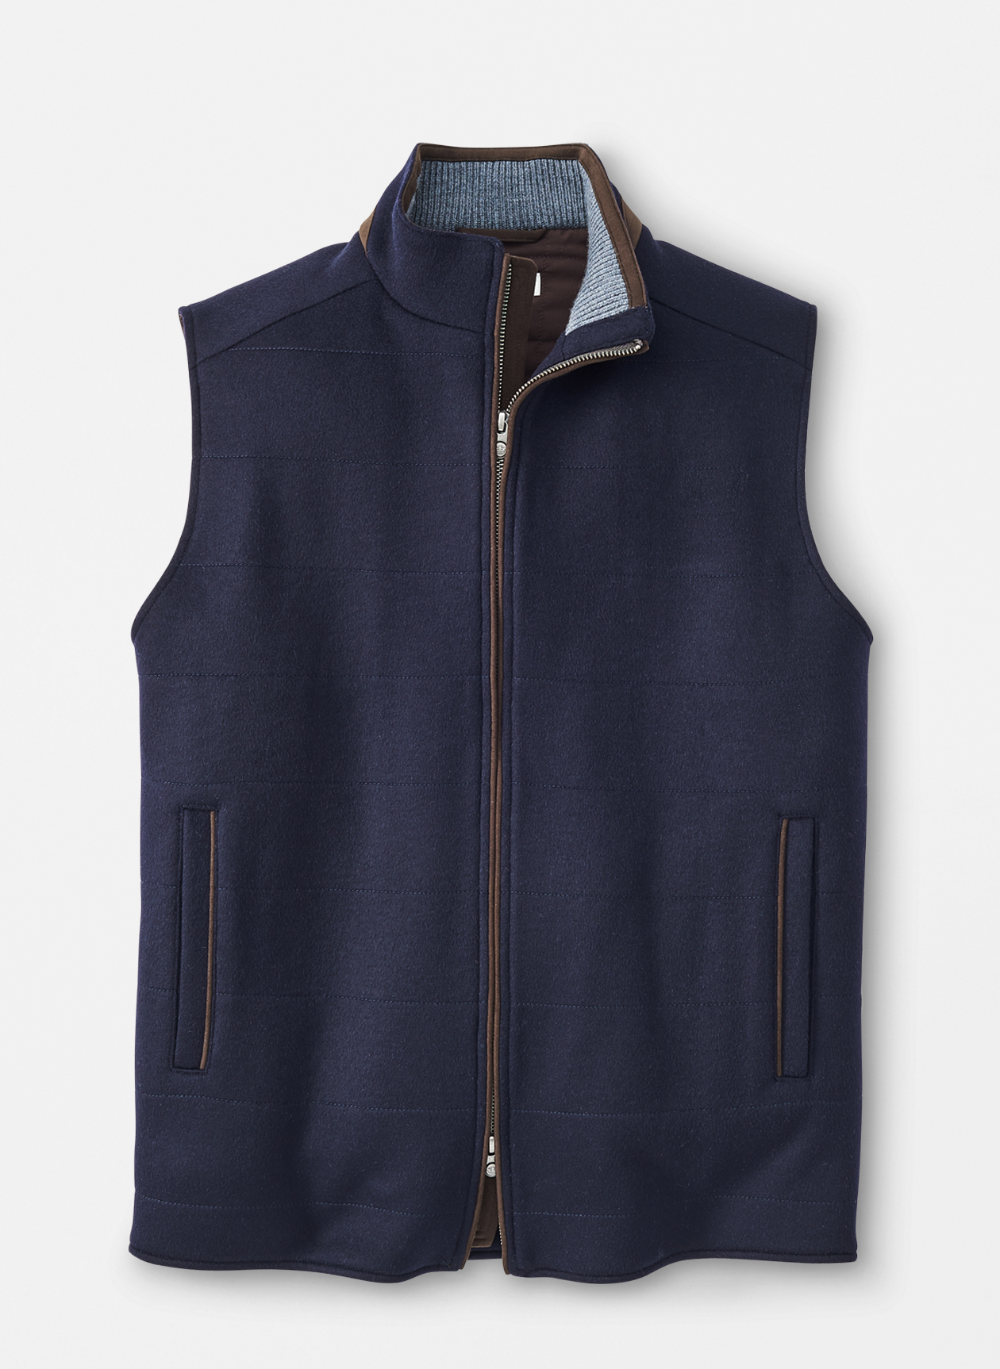 Crown FlexFleece Vest Peter Millar Fleece vest, Vest